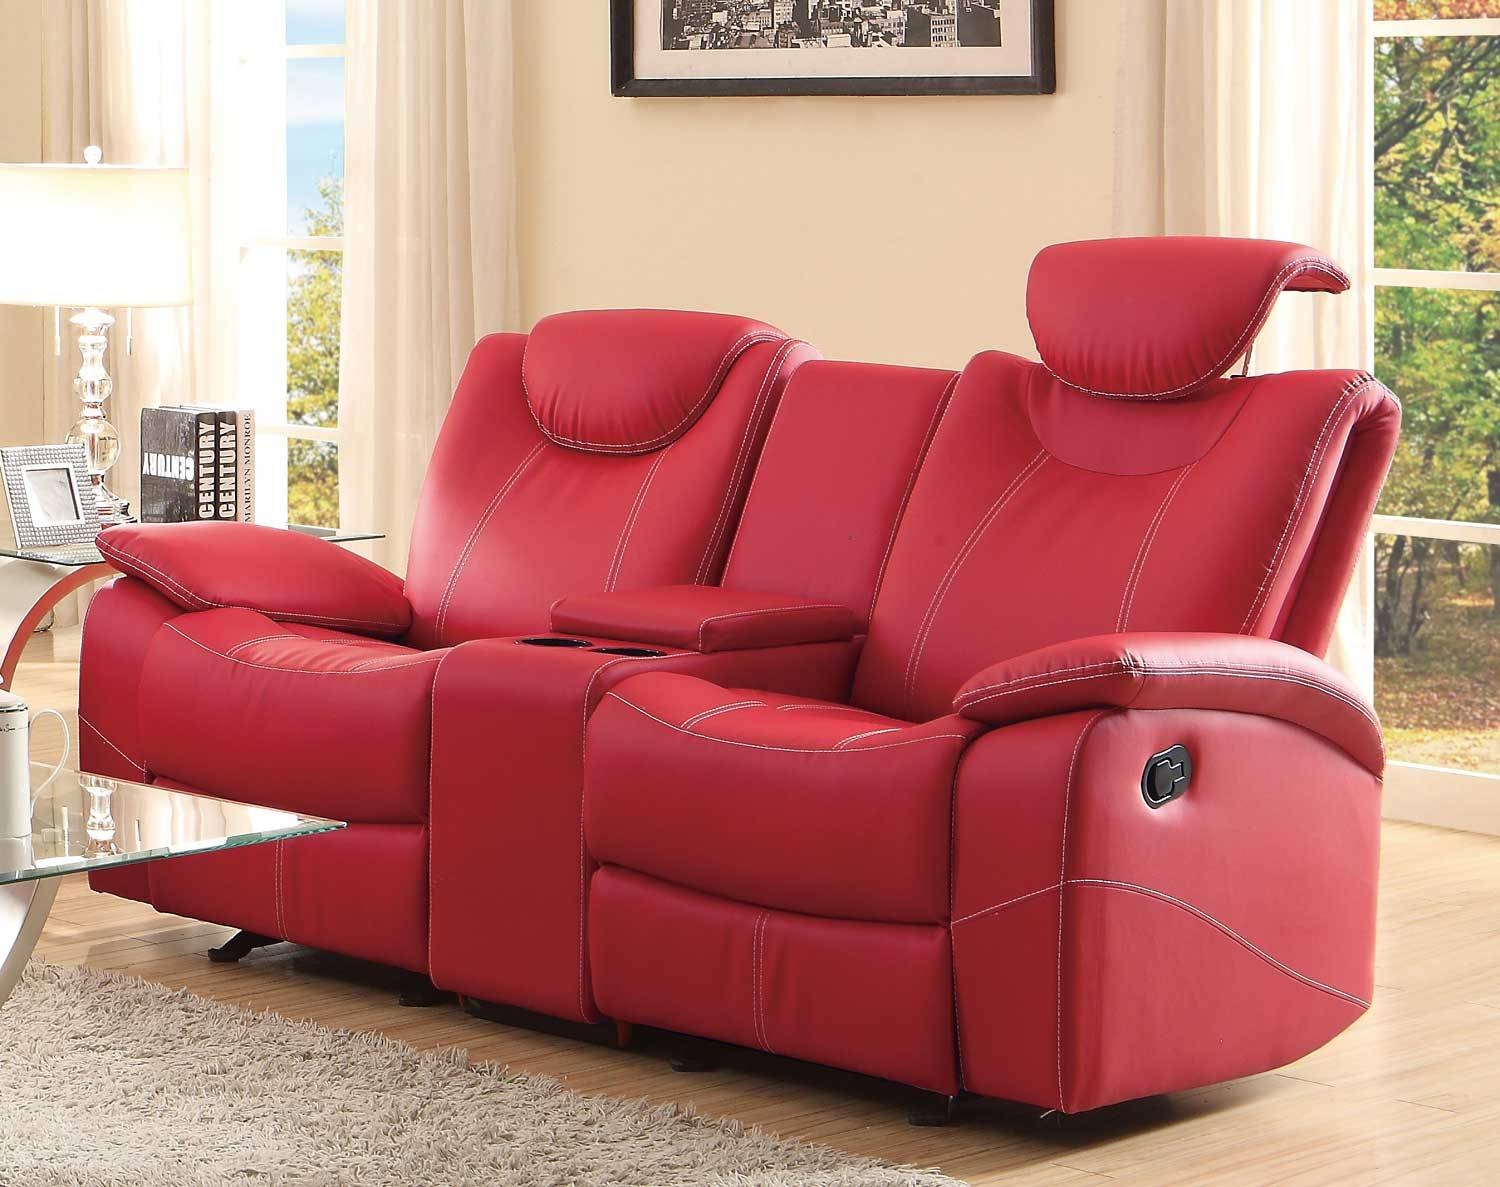 Furniture: Glamour Reclining Loveseat With Center Console For with regard to Modern Reclining Leather Sofas (Image 9 of 30)